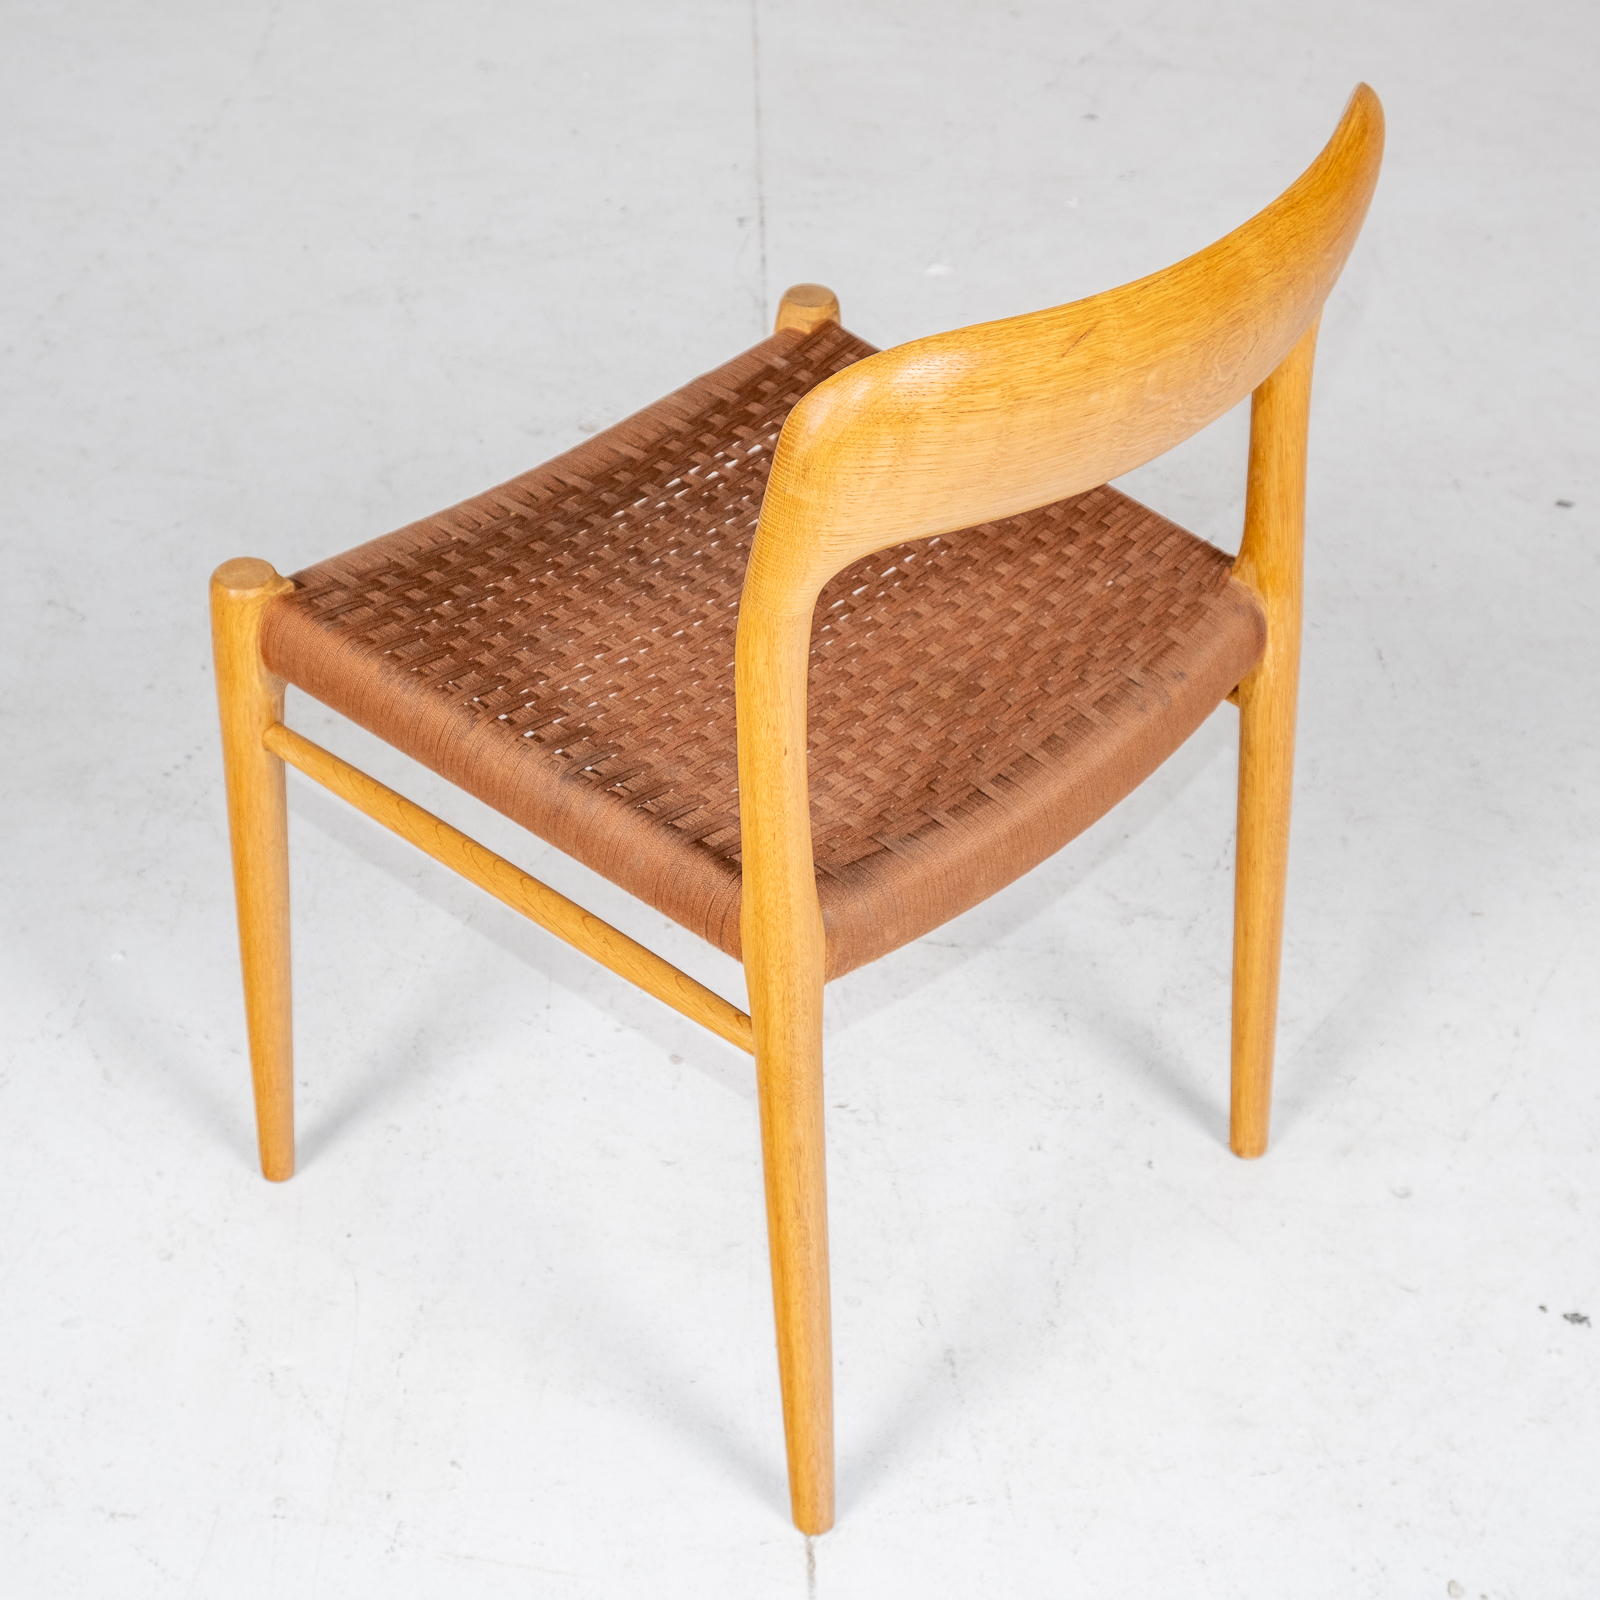 Set Of 6 Model 75 Dining Chairs By Neils Moller For J. L. Moller Mobelfabrik In Oak With Wool Cord, 1960s, Denmark6